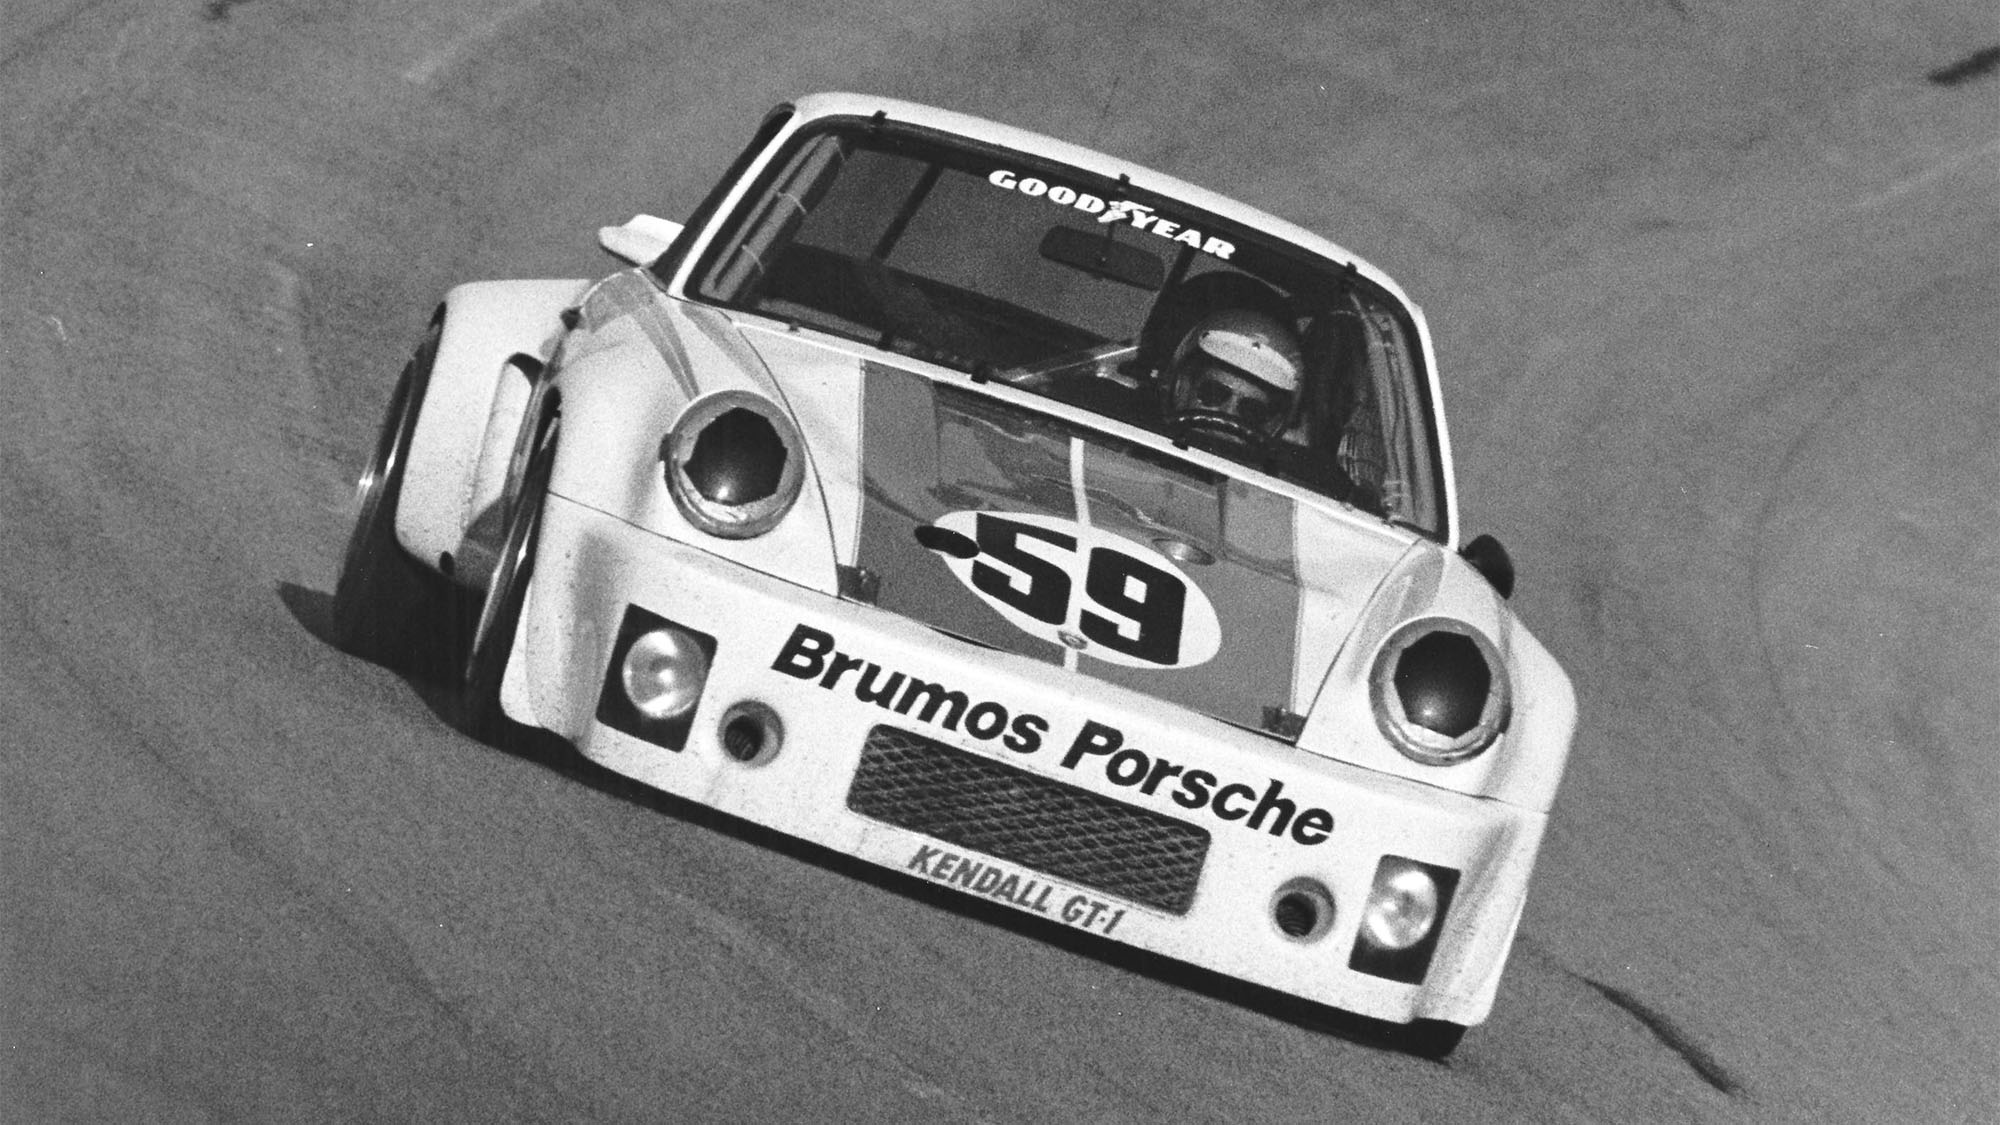 DAYTONA BEACH, FL — February 1-2, 1975: This Brumos Racing Porsche 911 Carrera RSR driven by Peter Gregg and Hurley Haywood took the victory in the 24 Hours of Daytona at Daytona International Speedway. The team completed 684 laps and were 15 circuits ahead of the second place car. (Photo by ISC Images & Archives via Getty Images)